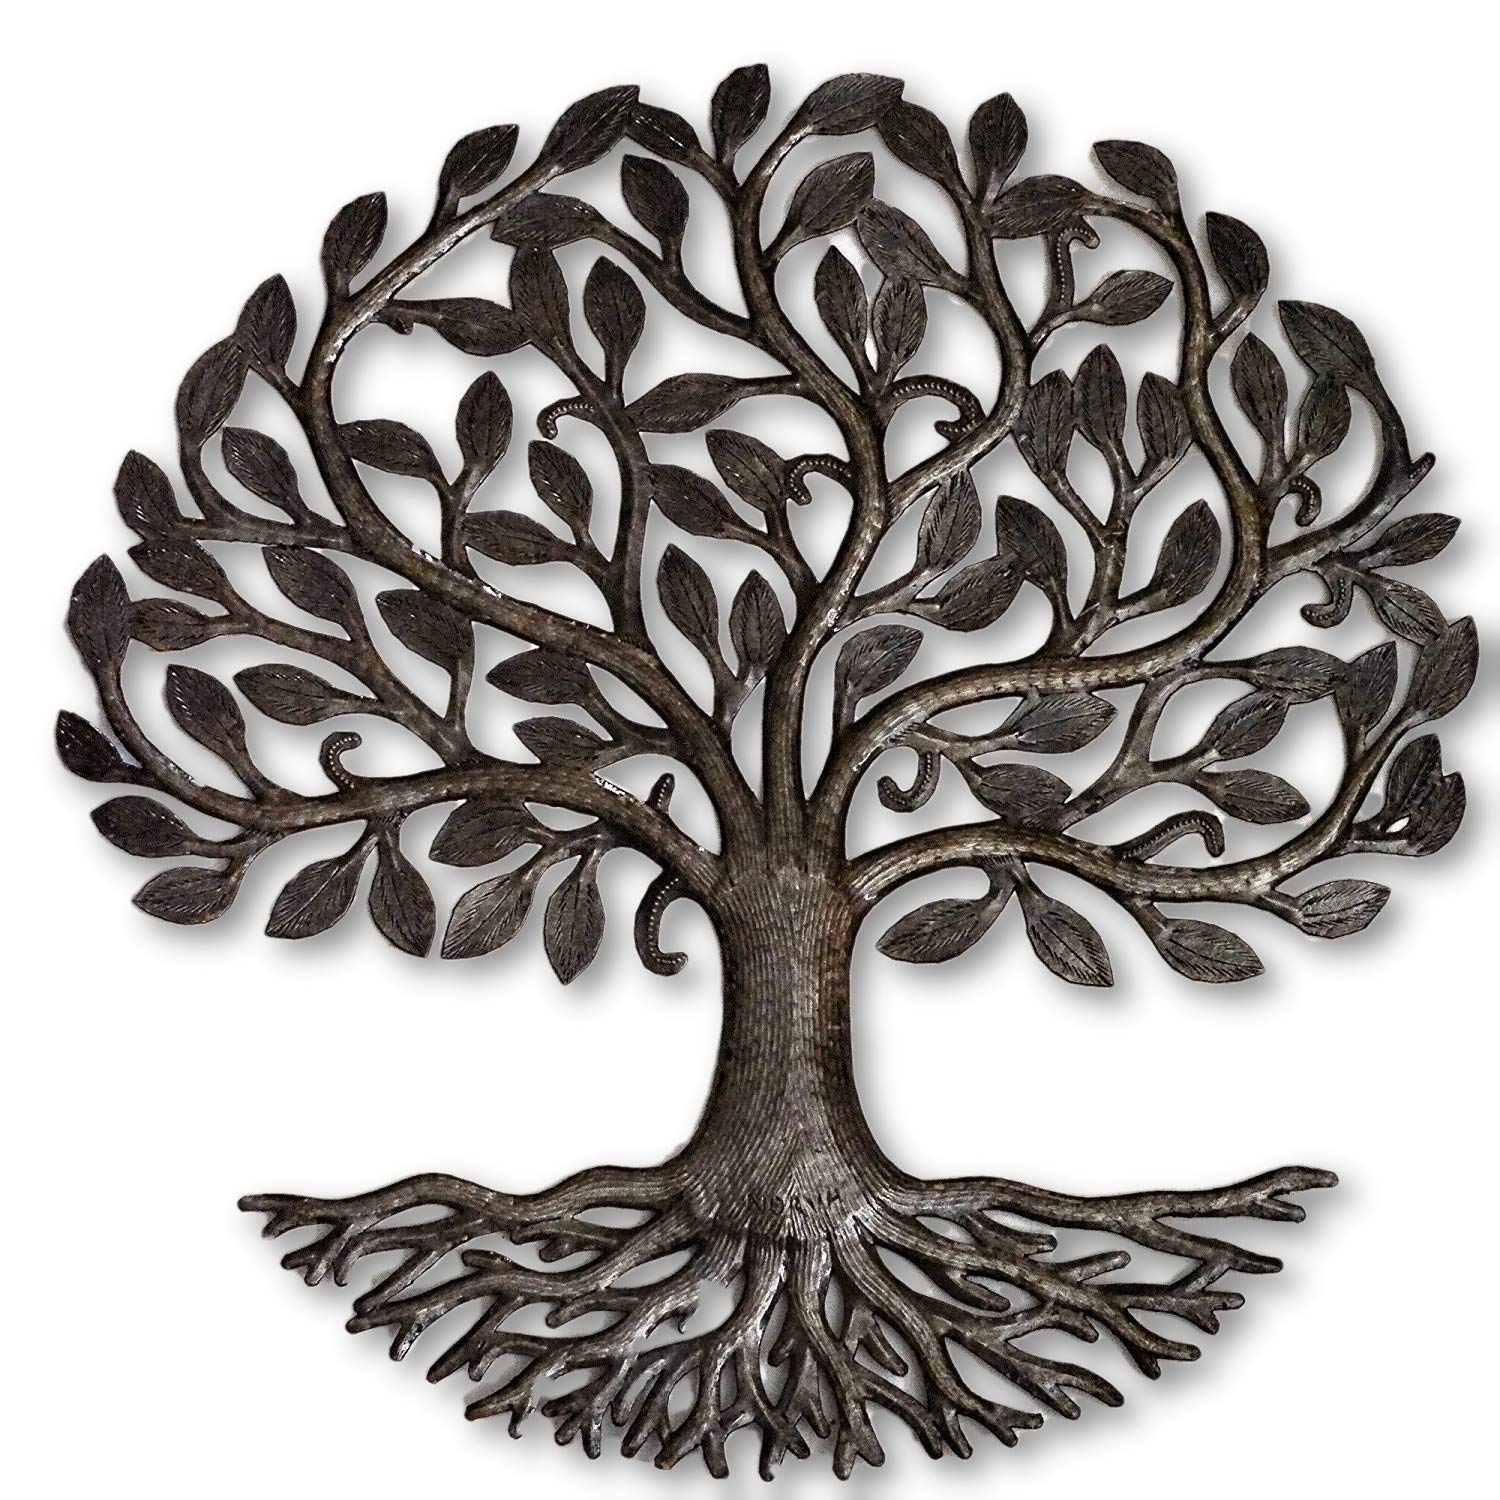 Metal Tree of Life Roots, Large Tree, Rustic Farmhouse Decor, Nature Inspired, Handmade in Haiti, 23 In. x 23 In., Fair Trade Federation Certified by it's cactus - metal art haiti